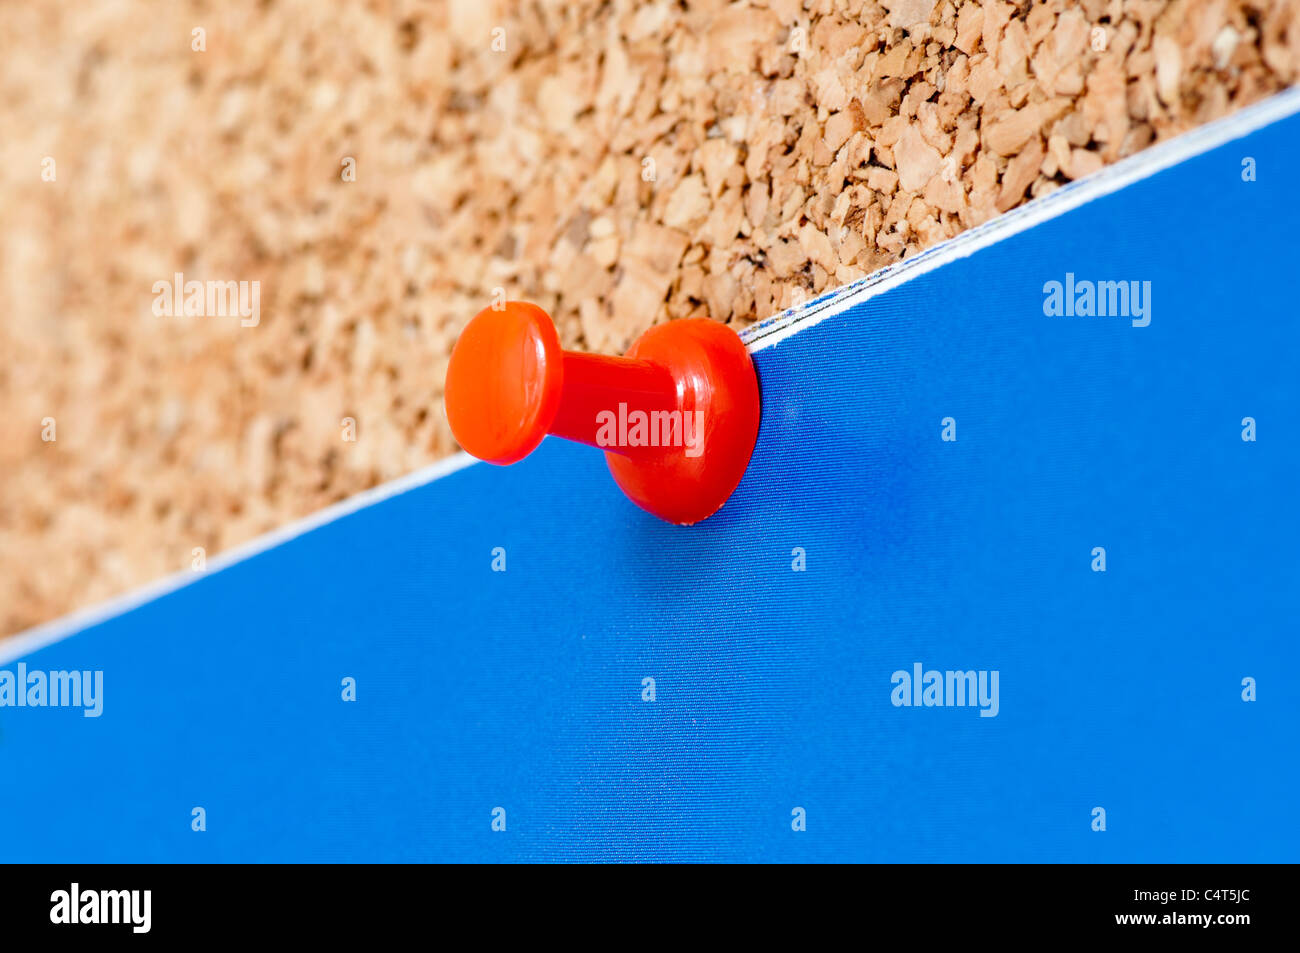 Red Plastic Noticeboard Pin - Stock Image